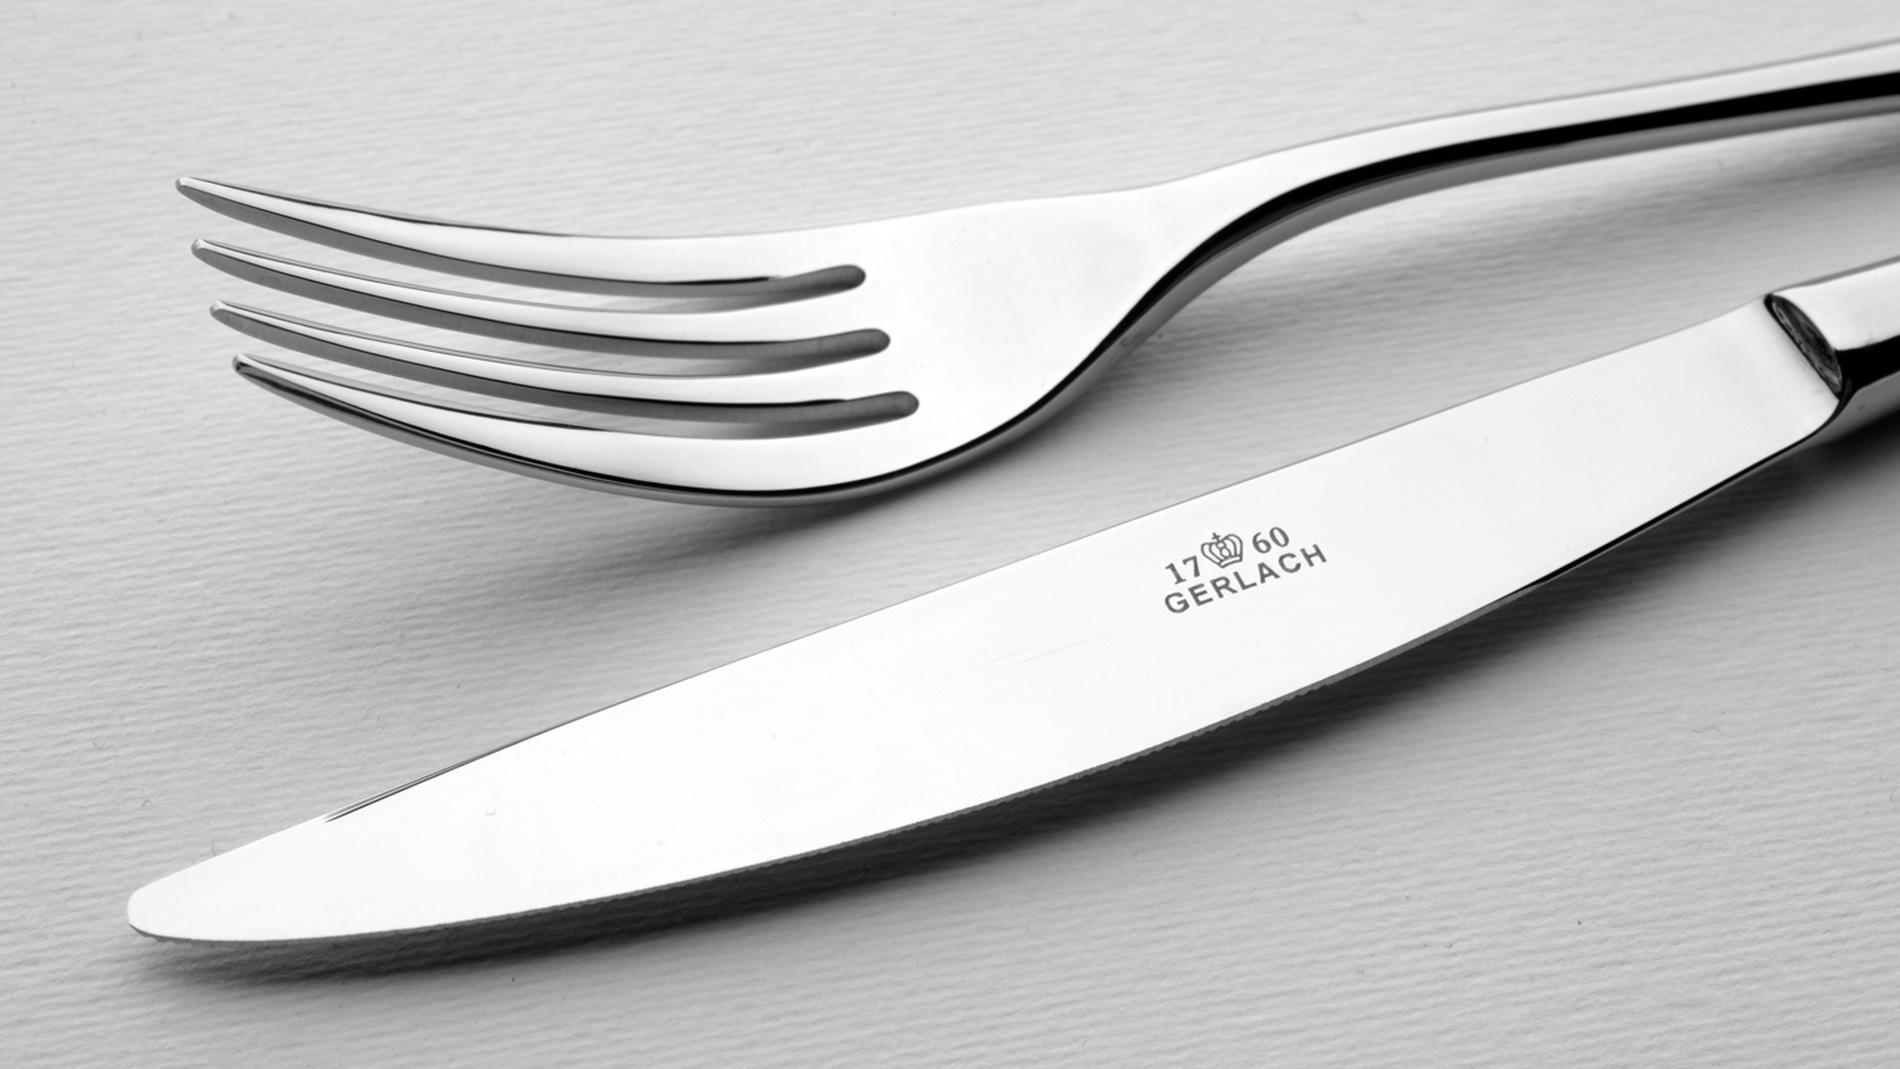 the Muza cutlery set